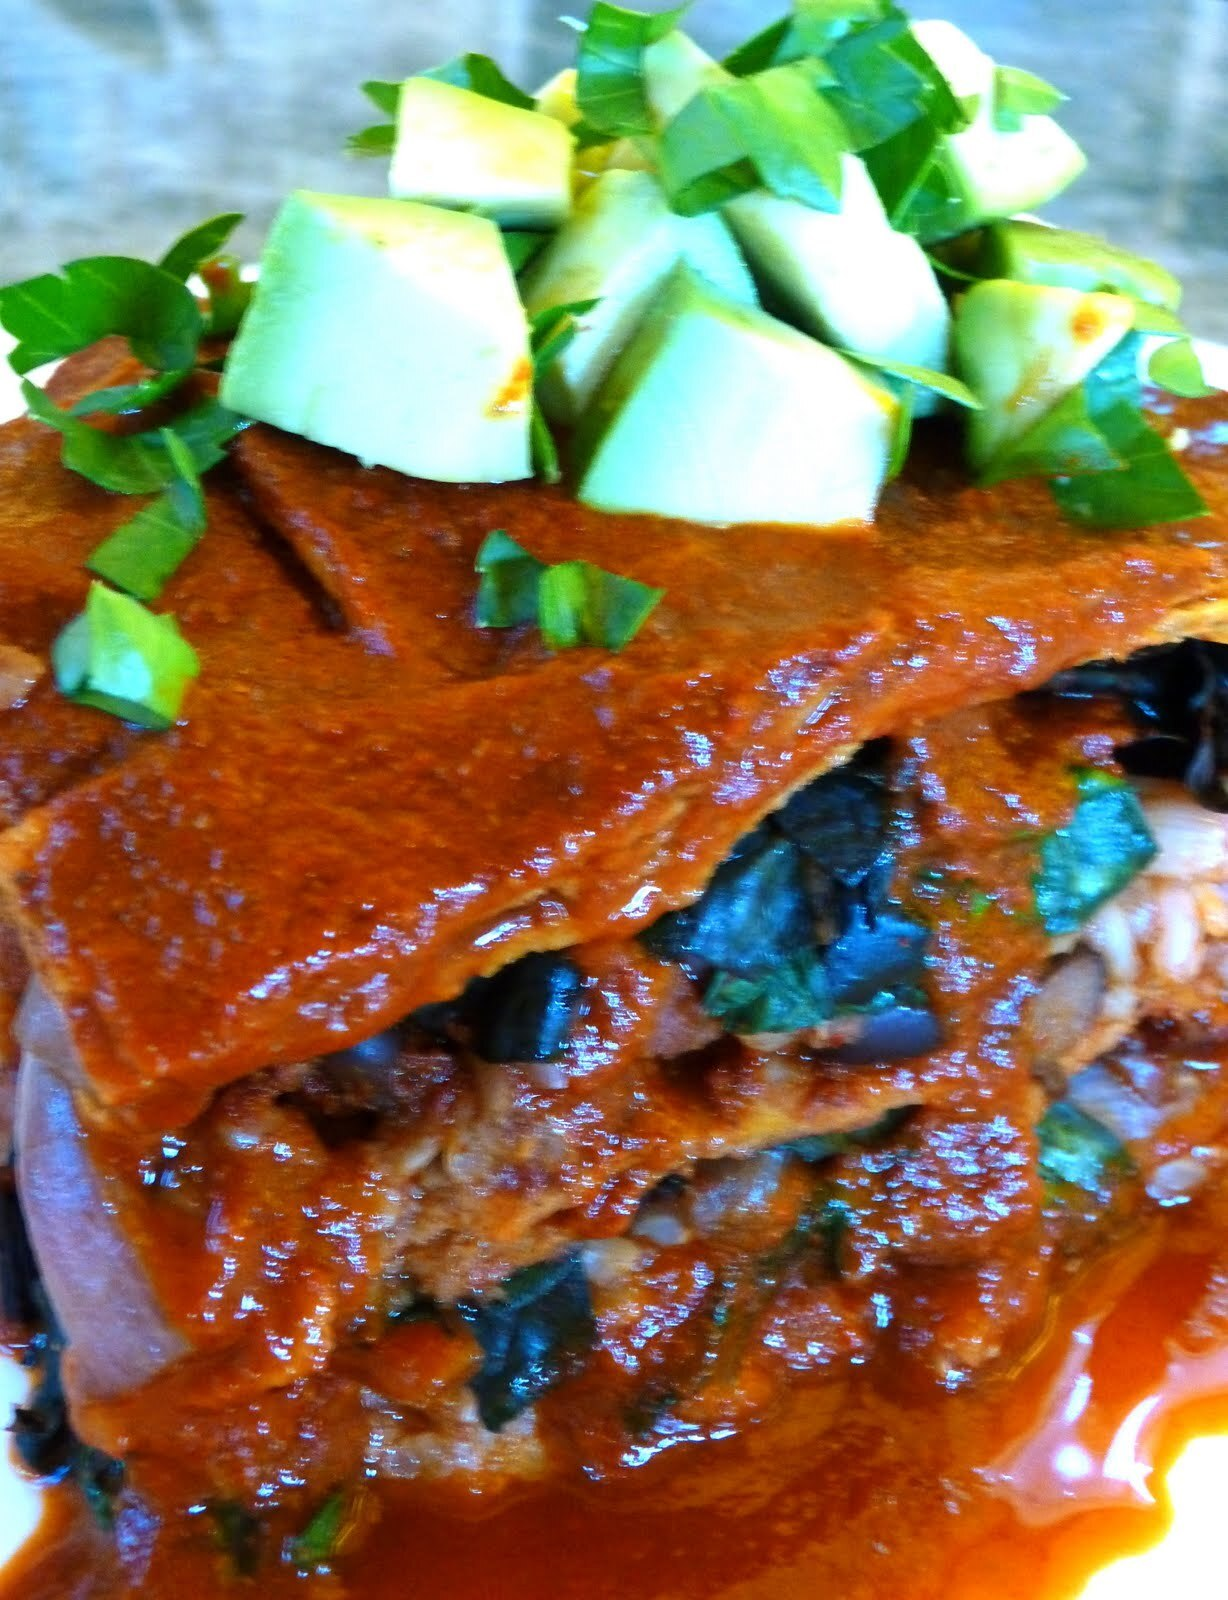 Celebrate World Vegetarian Day With A Delicious Vegan Swiss Chard And Black Bean Enchilada Casserole